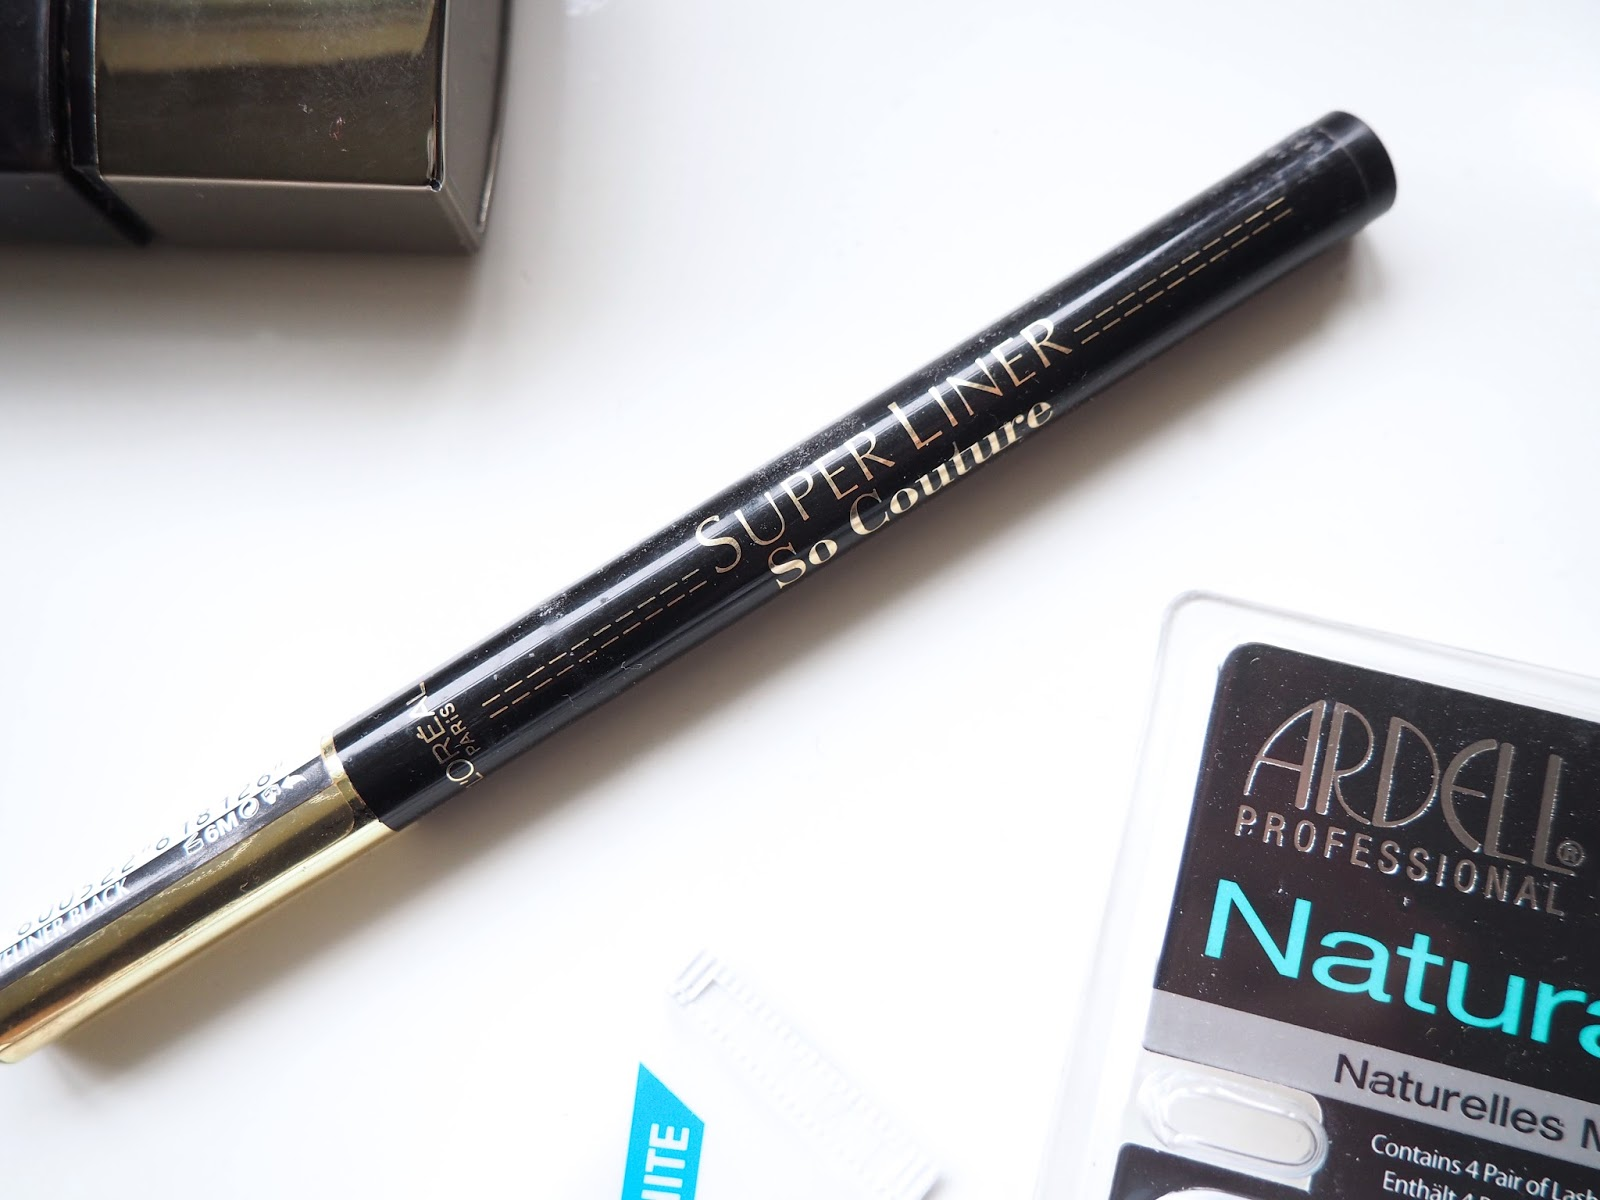 It's Cultured - Seven Beauty Products I Can't Live Without including L'Oreal Liquid Eyeliners